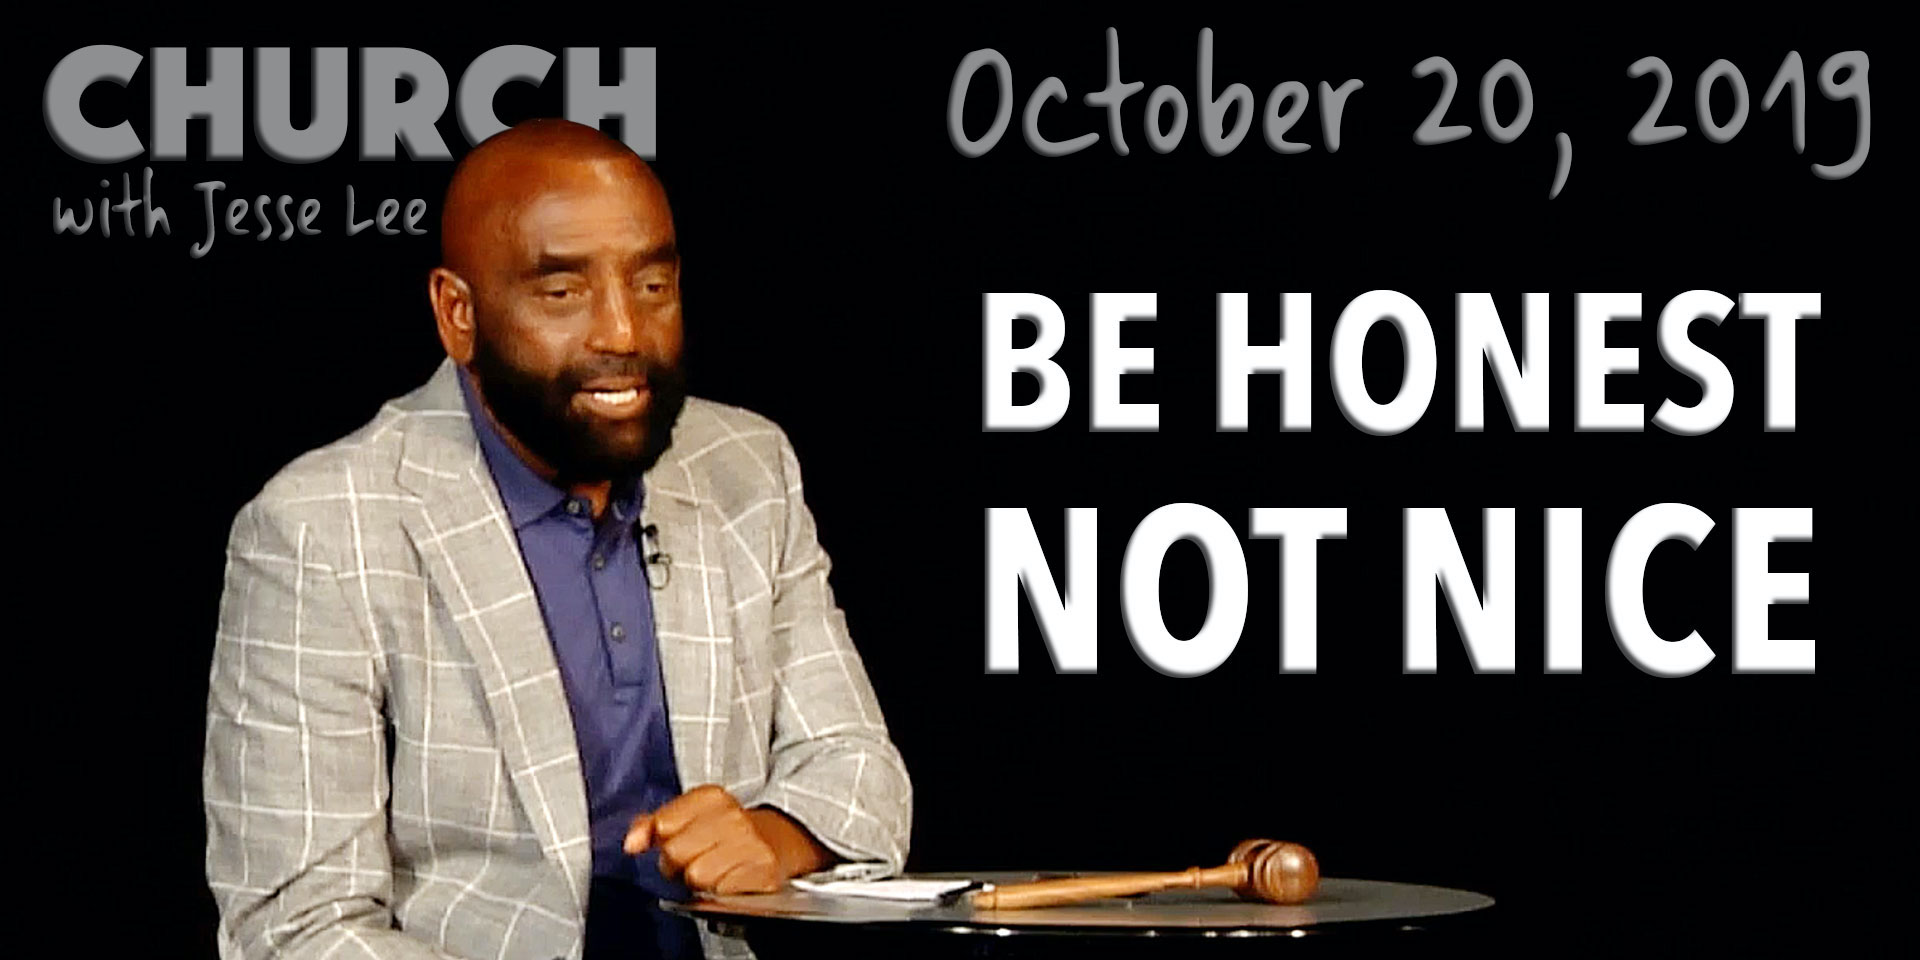 Be Honest, Not Nice (Church, Oct 20, 2019)